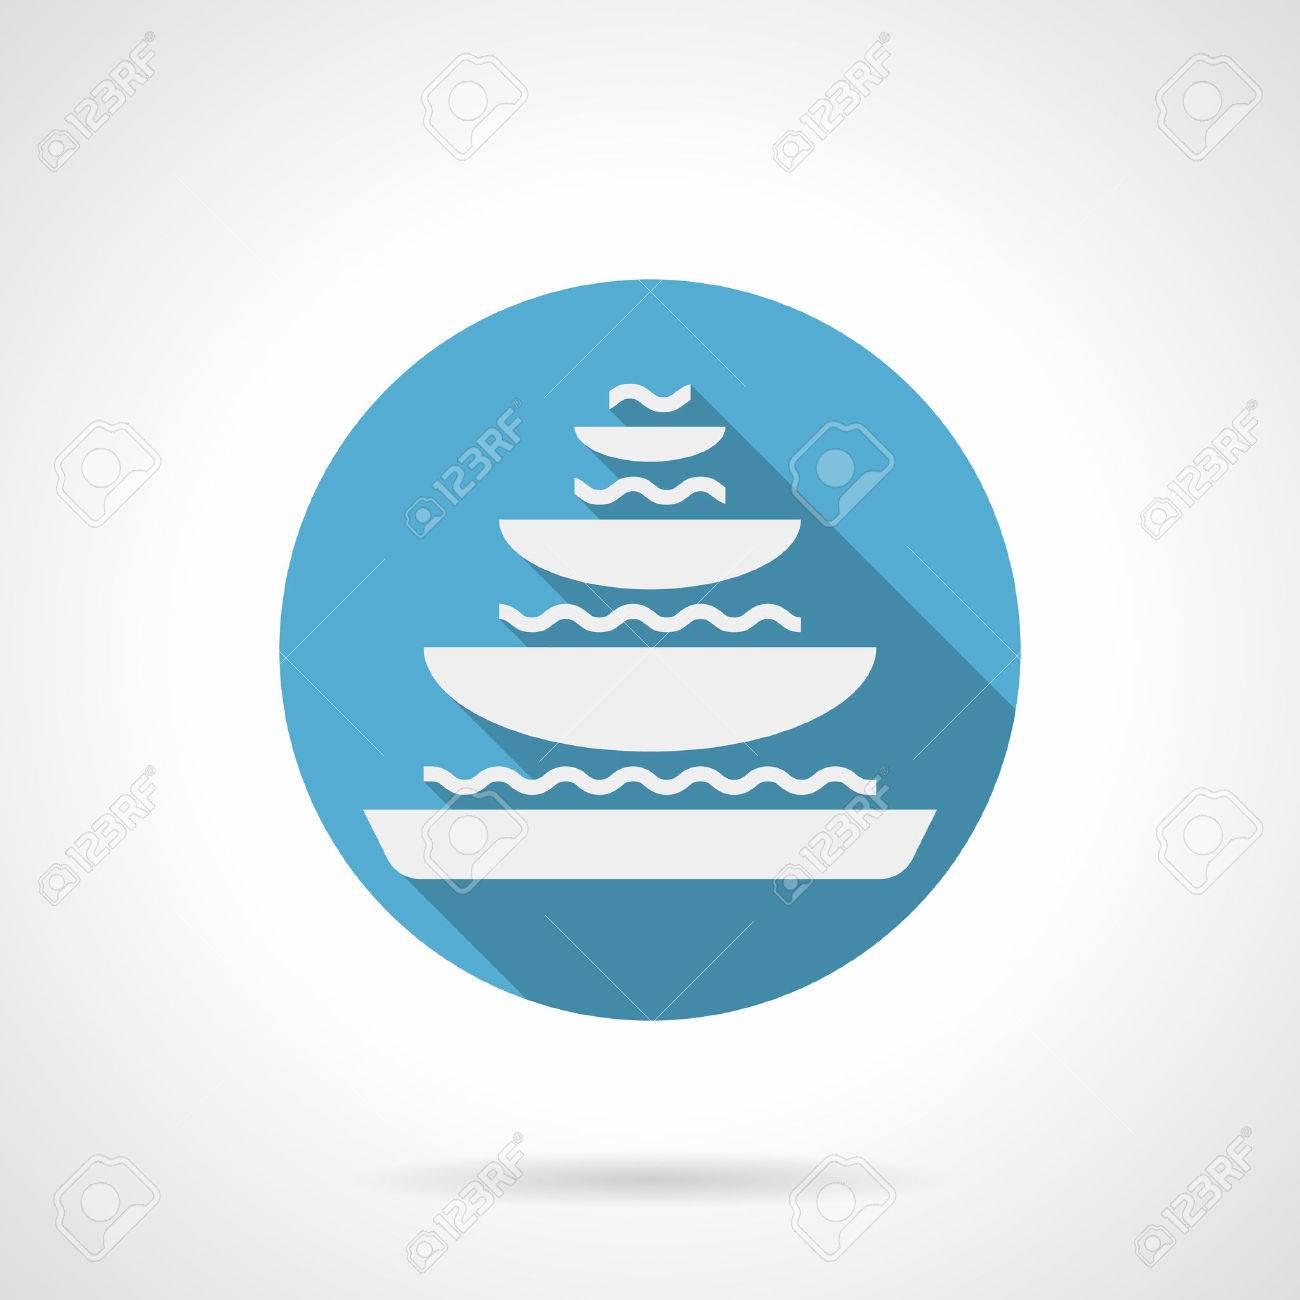 White Silhouette Sign Of Tiered Fountain With Bowls And Water Stone Decoration Fountains For